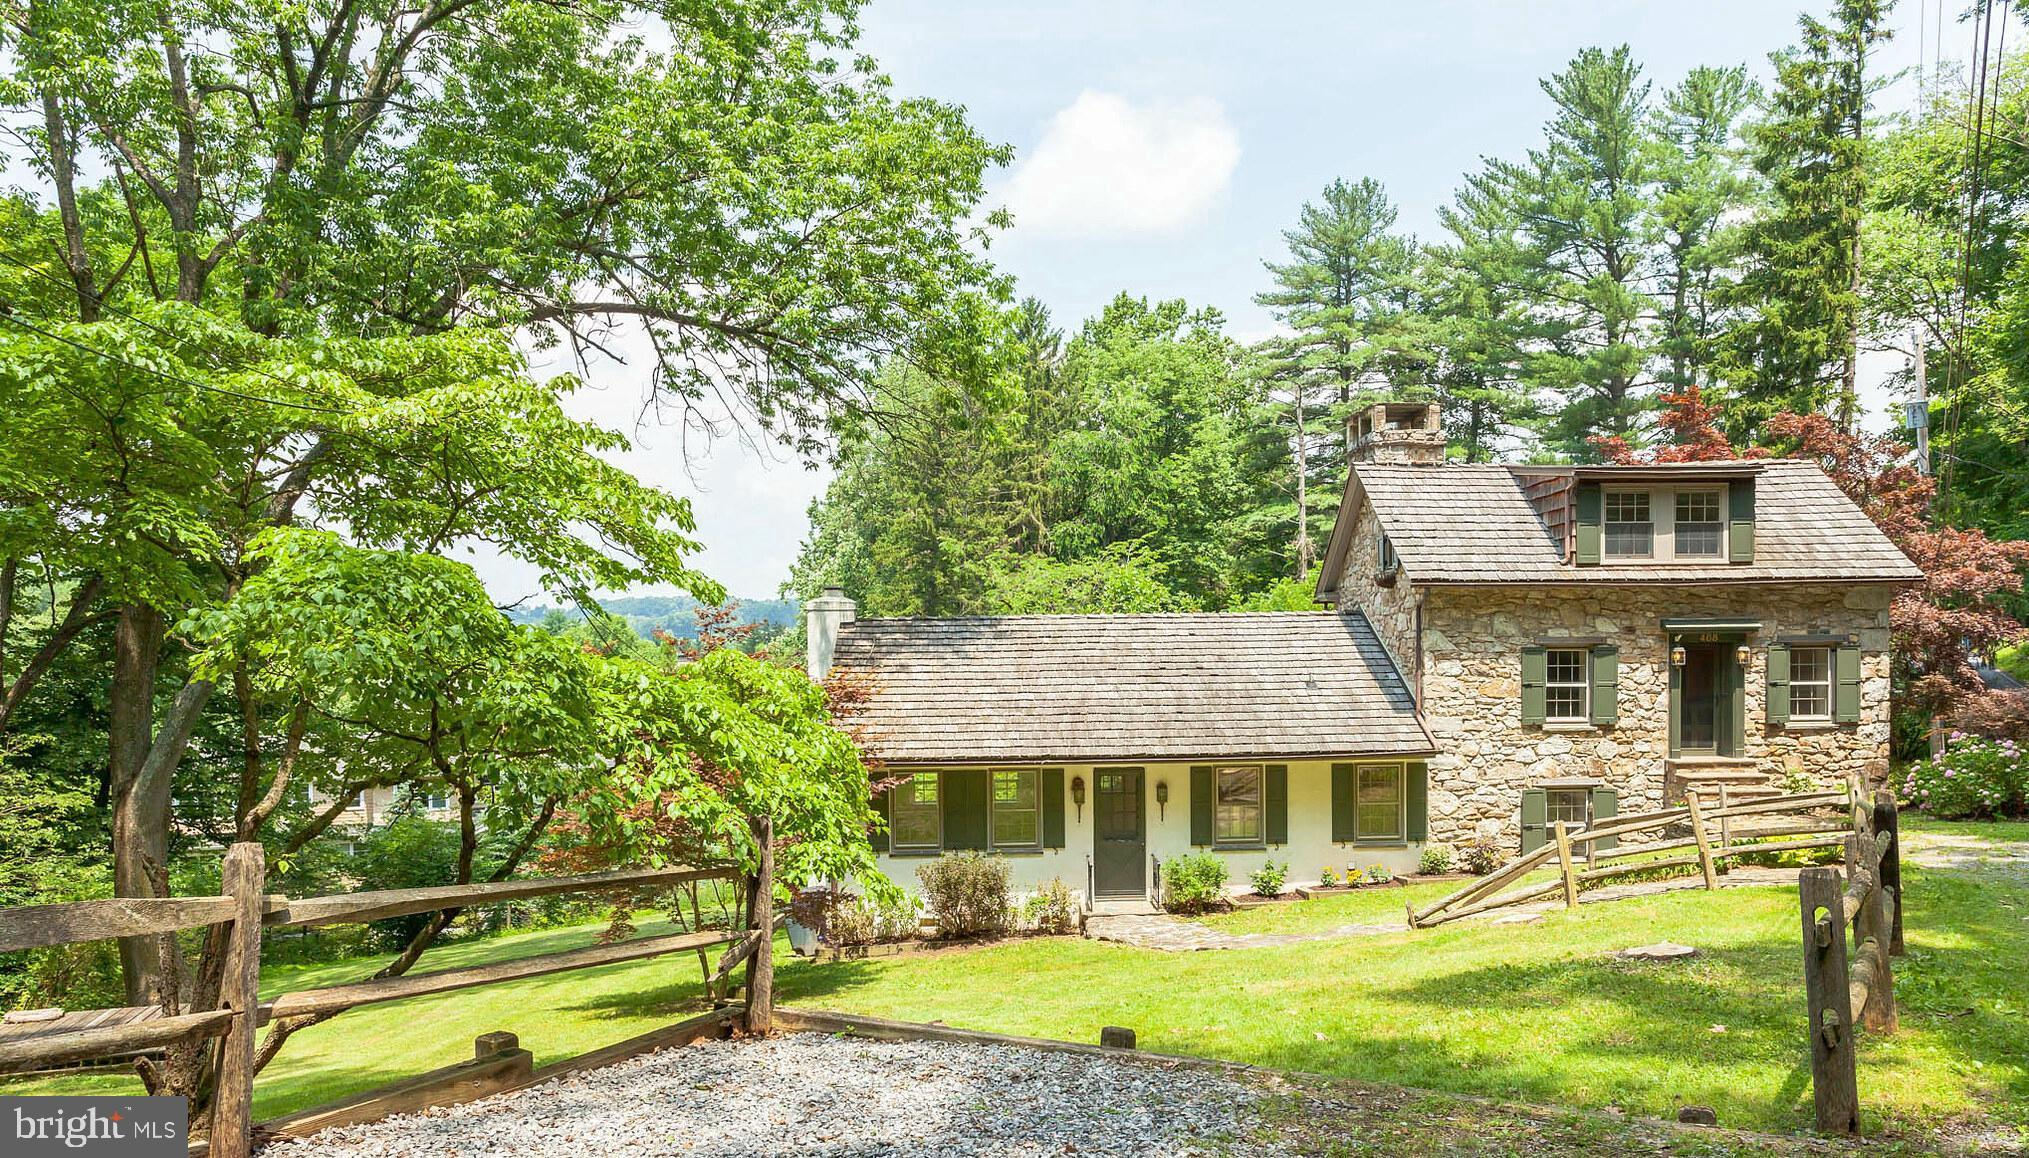 Enchanting, renovated Chester Springs stone cottage on .72 acres, with original structure dating back to the mid-1800's, positively exudes character and charm - two Dutch doors, two wood burning fireplaces, two winding staircases, gorgeous exposed stone, cedar shake roof, claw foot soaking tub, hardwood and slate floors and impeccable hardware throughout.~ This idyllic property is located less than 2 miles from the PA Turnpike, amid plenty of proximate shopping, and is a quick 10 minute drive to the Exton Amtrak station, with direct routes to Philadelphia and NYC, making commutes in and out of either city a snap.~ This unique home has a wonderfully flexible and adaptable floor plan.~ Take the lower entrance into the main level front hall, past the coat closet, into the lovely living room with wood burning fireplace, space for both living room and formal dining room furnishings, built-in shelves and cabinets and bay window that provides beautiful natural light. Just down the hall are a main level bedroom and full bath with claw foot tub, making one level living a wonderful option.~ There is also a highly functional laundry room, along with a generous pantry / storage closet. The main level hallway then leads to a uniquely preserved, incredible stone archway that was the original cook's fireplace, and just on the other side is the updated eat-in kitchen.~ Slate floors, Corian counters and island, gas range, lots of beautiful cherry cabinets, another pantry and more built-ins add to the aesthetic appeal of this highly functional kitchen, with plenty of room for a dining table.~ ~Ascend the turned stair to the next level of the home, which is the bright and spacious home office with dedicated Dutch door entrance, wood burning fireplace and built-in shelving. This space makes working from home a complete pleasure, and is an enviable venue for all your Zoom meetings!~ This level could also be well utilized as a play room, family room or third bedroom.~ Another turned stai